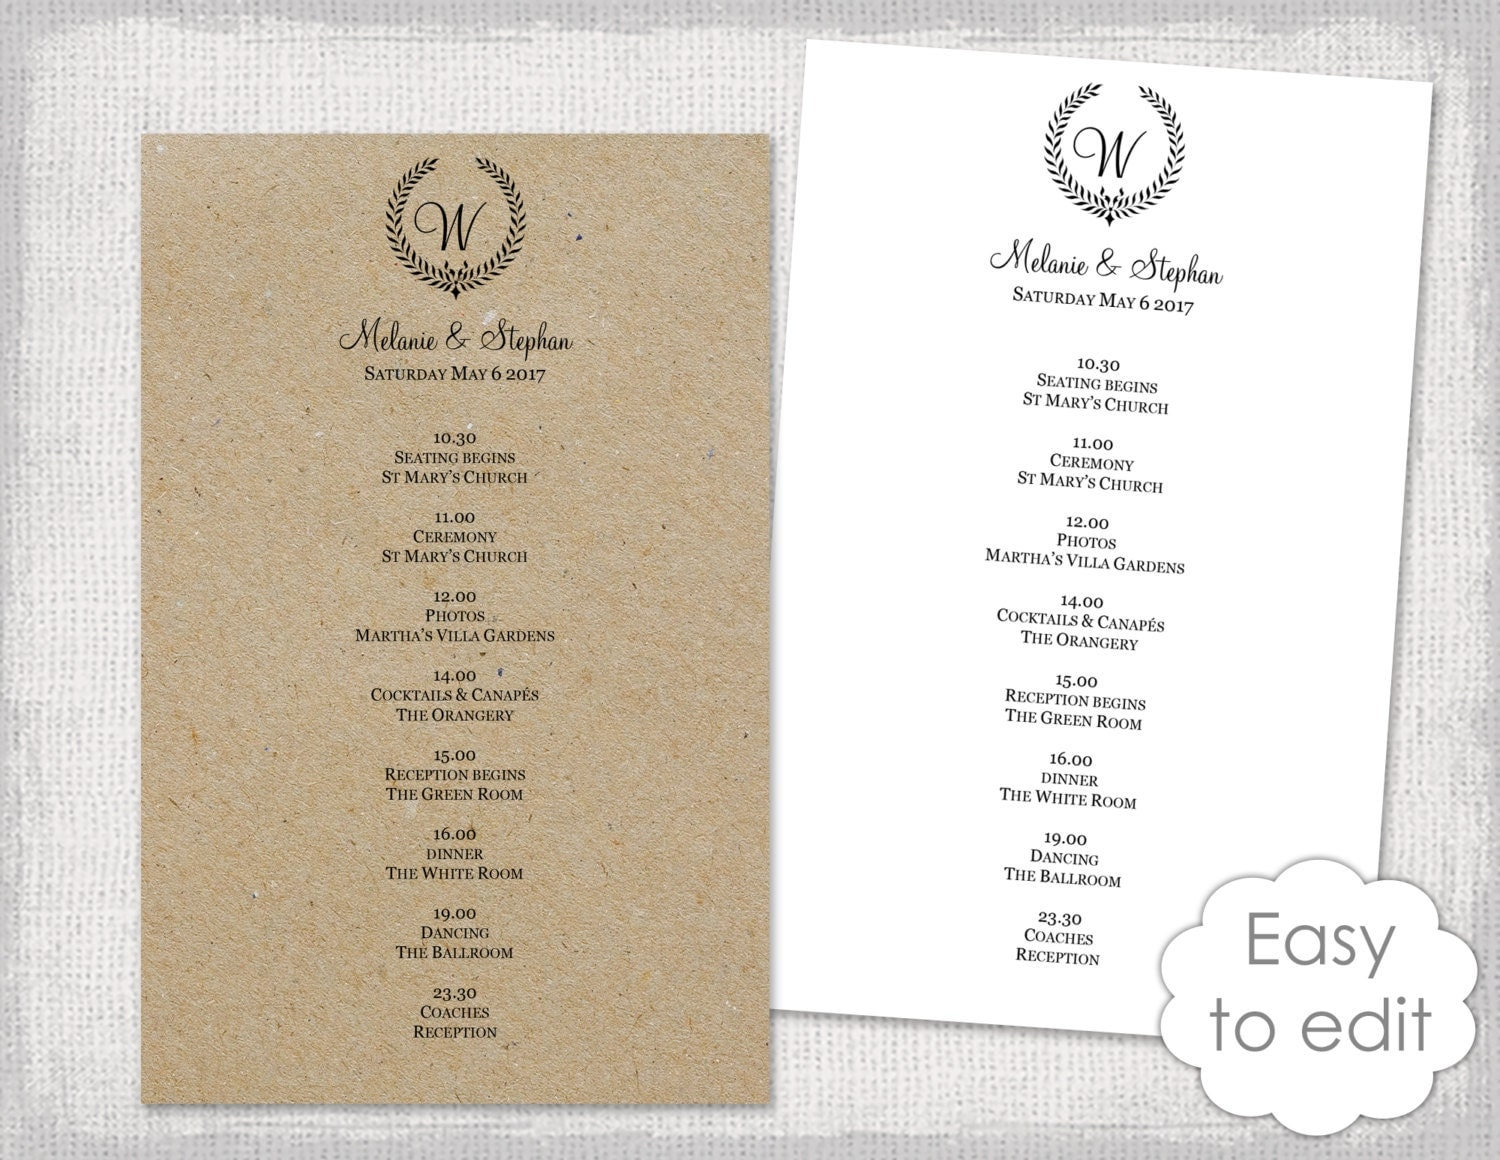 Wedding itinerary – Wedding Agenda Template